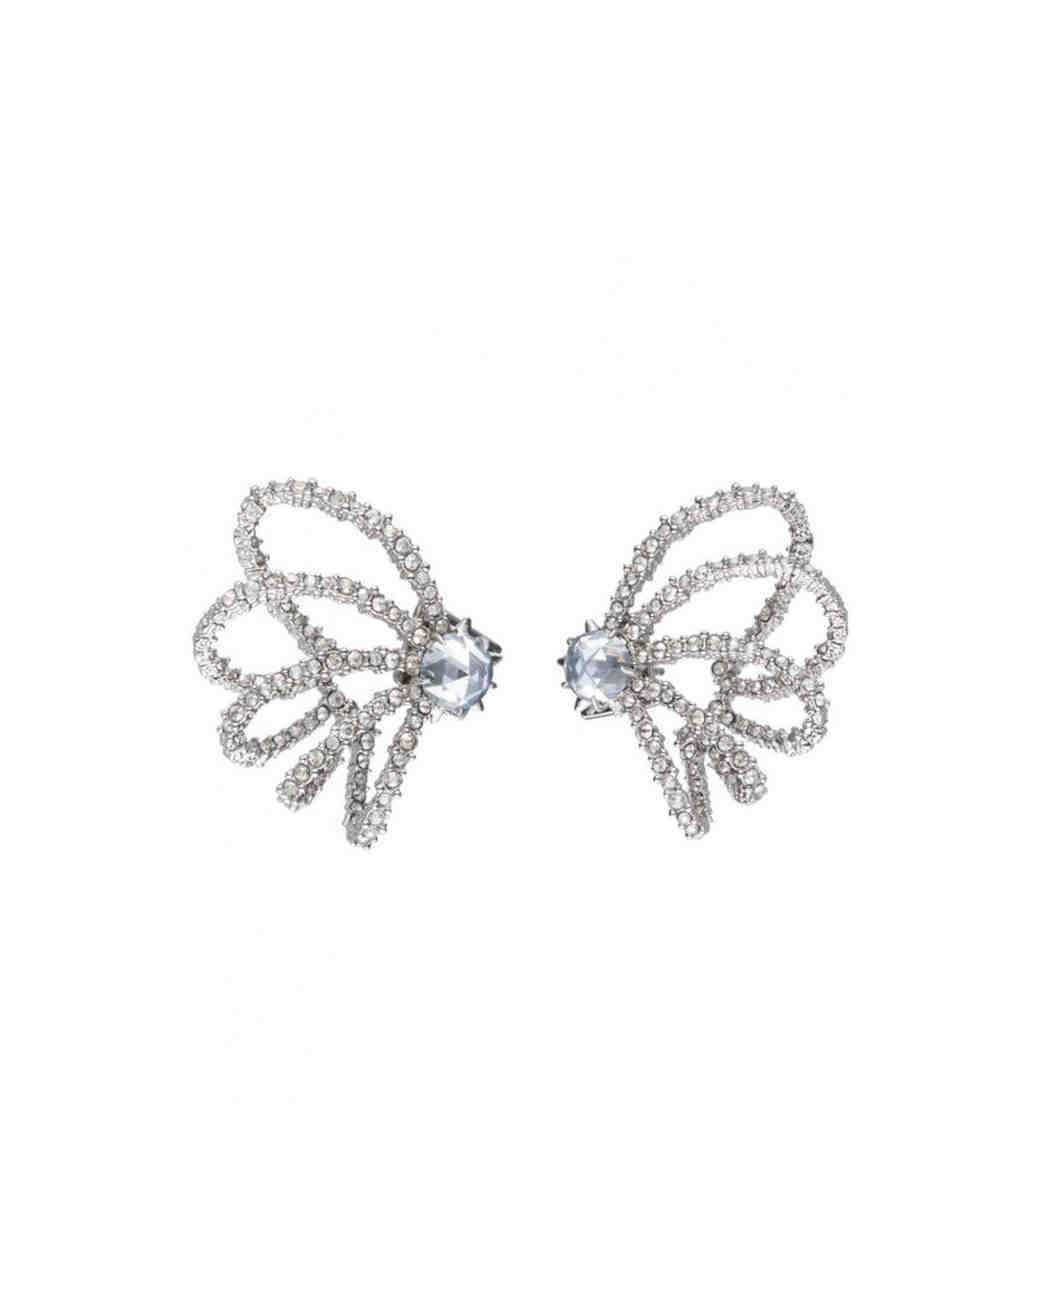 lace anniversary gifts earrings alexis bittar